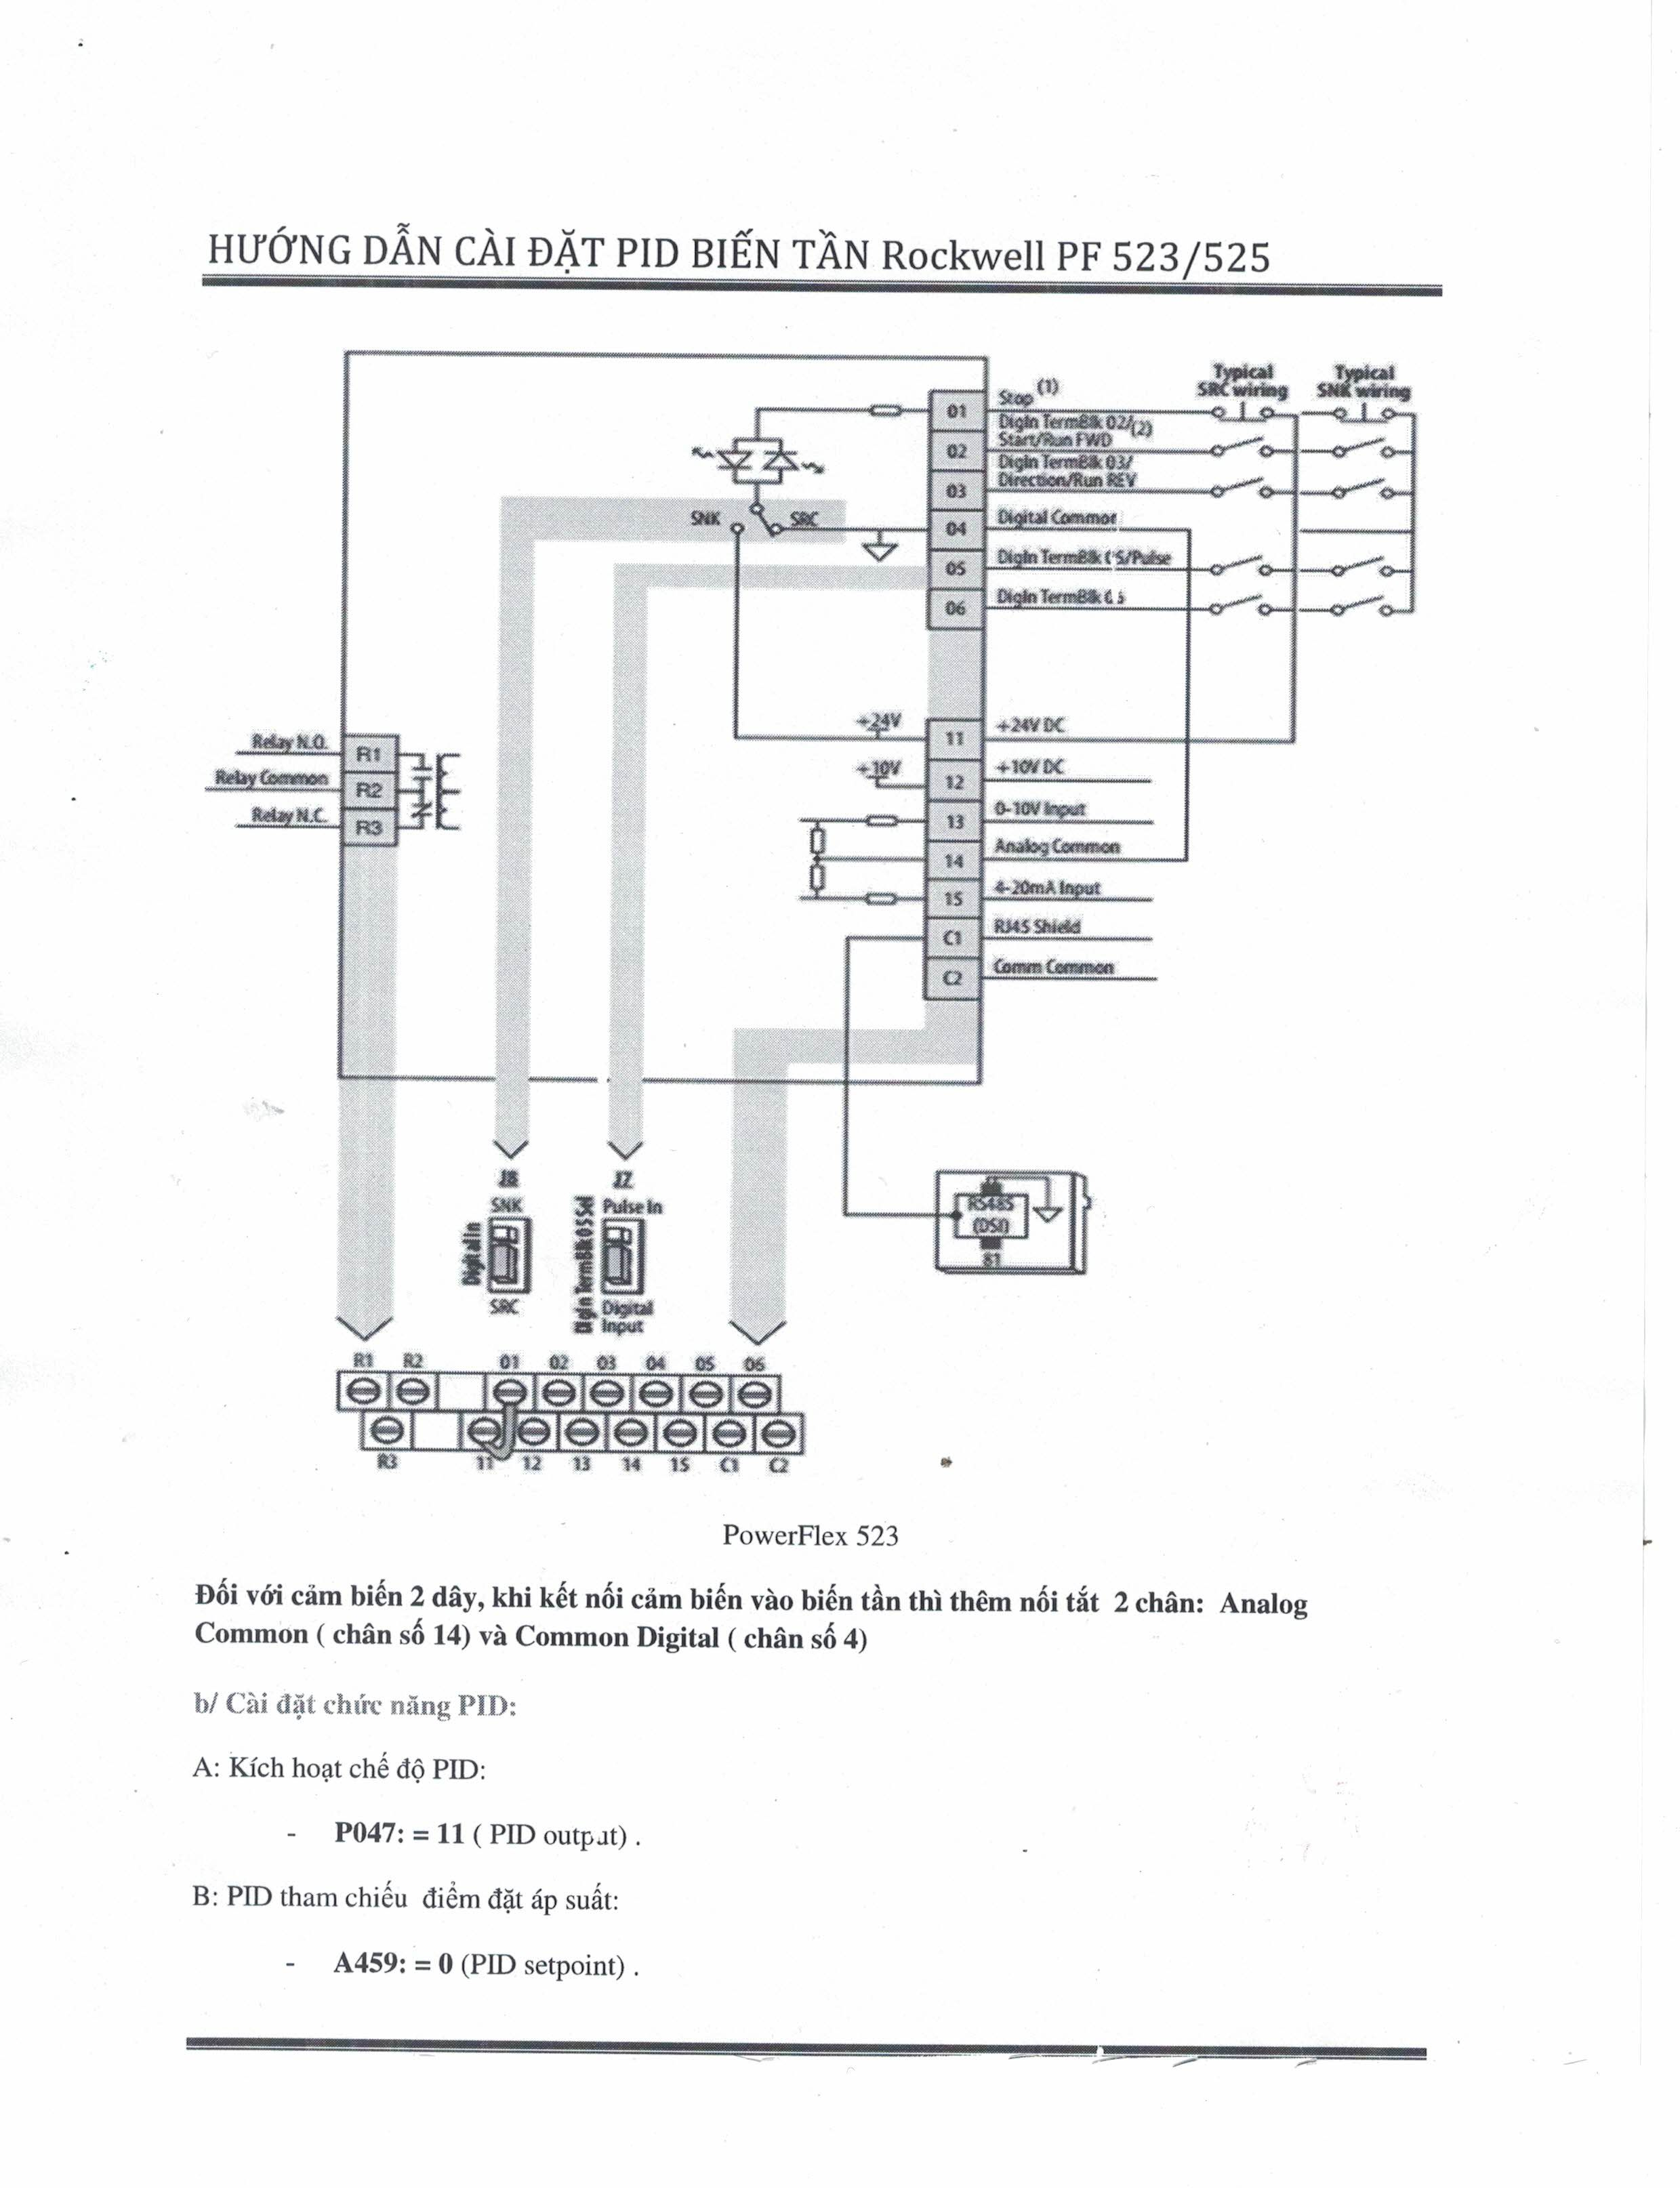 powerflex 525 control wiring diagram